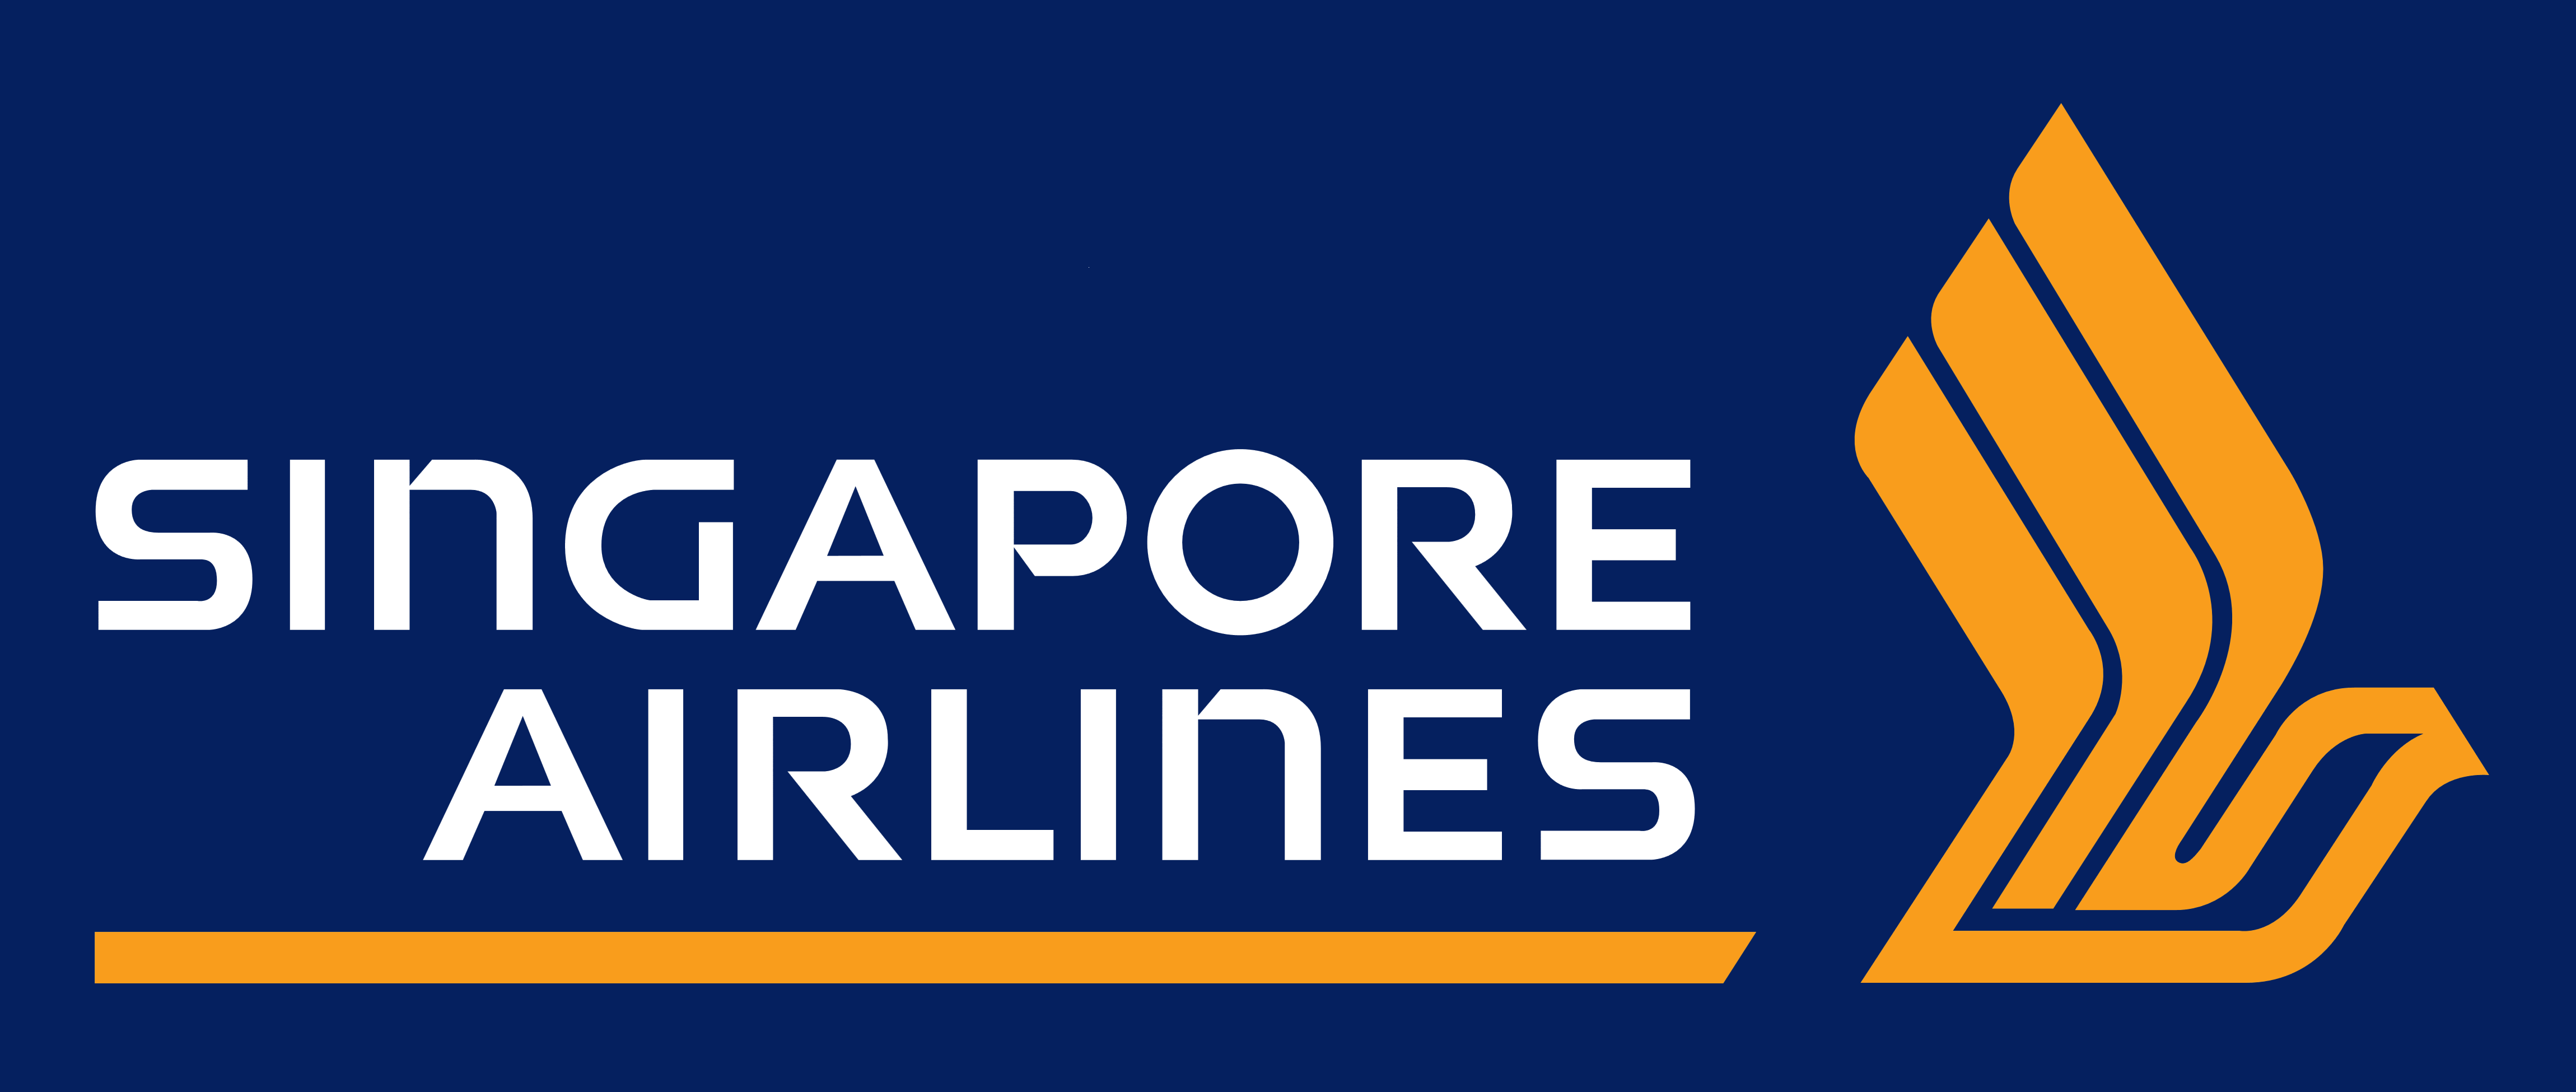 Singapore Airlines – Logos, Brands And Logotypes - Singapore Airlines Logo PNG